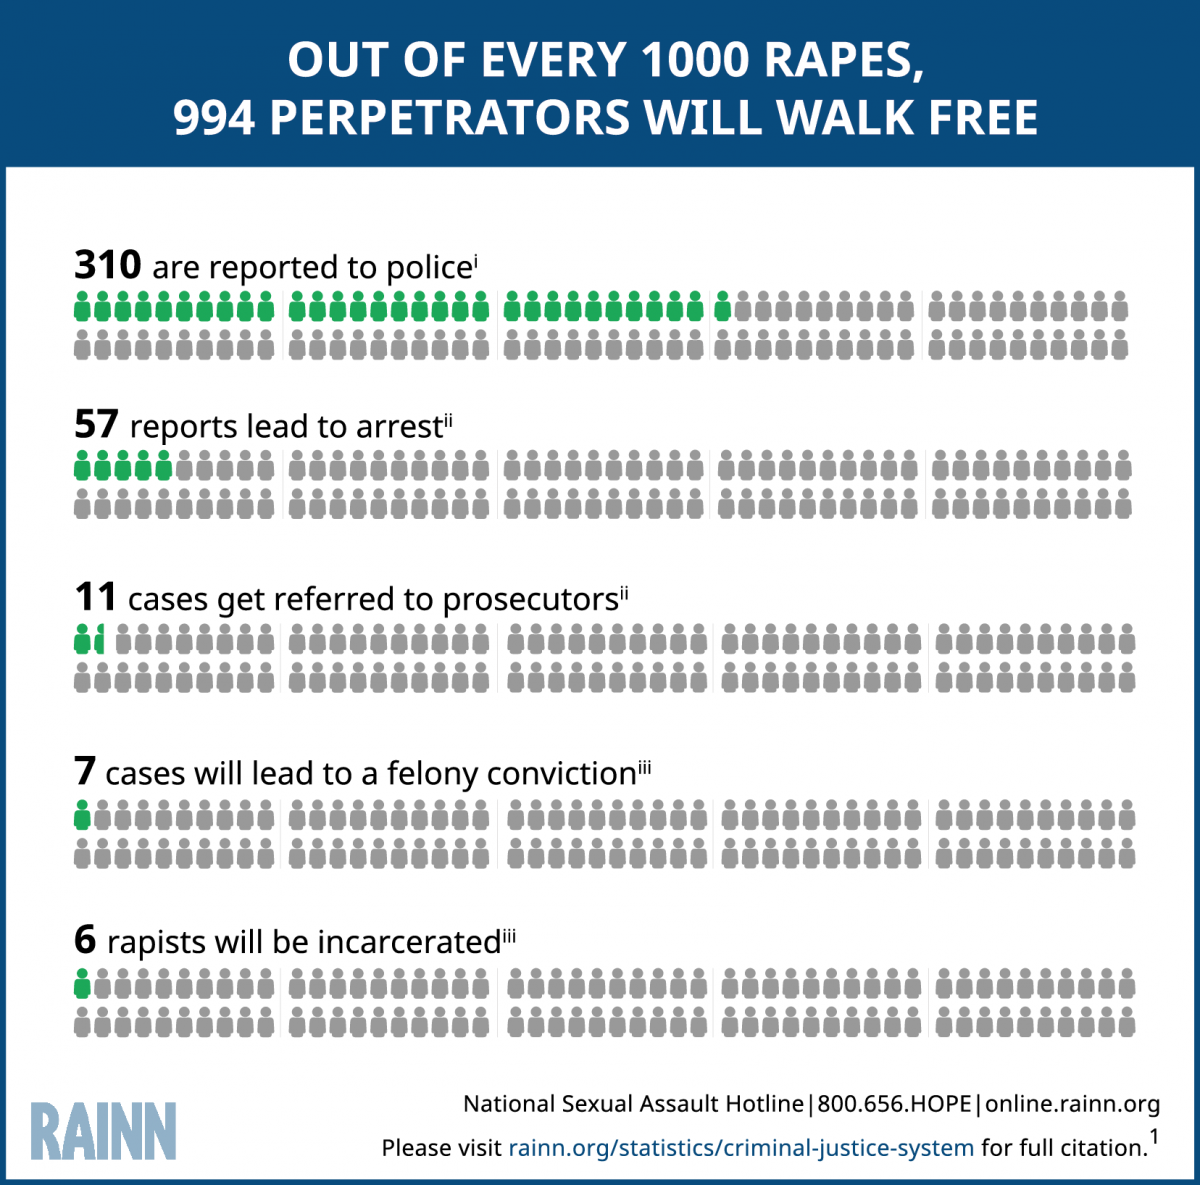 Graphic demonstrating that out of 1000 rapes, 994 perpetrators will walk free. Out of every 1,000 rapes, 310 are reported to the police, 57 reports lead to arrest, 13 cases get referred to prosecutors, 7 cases will lead to a felony conviction, 6 rapists will be incarcerated.